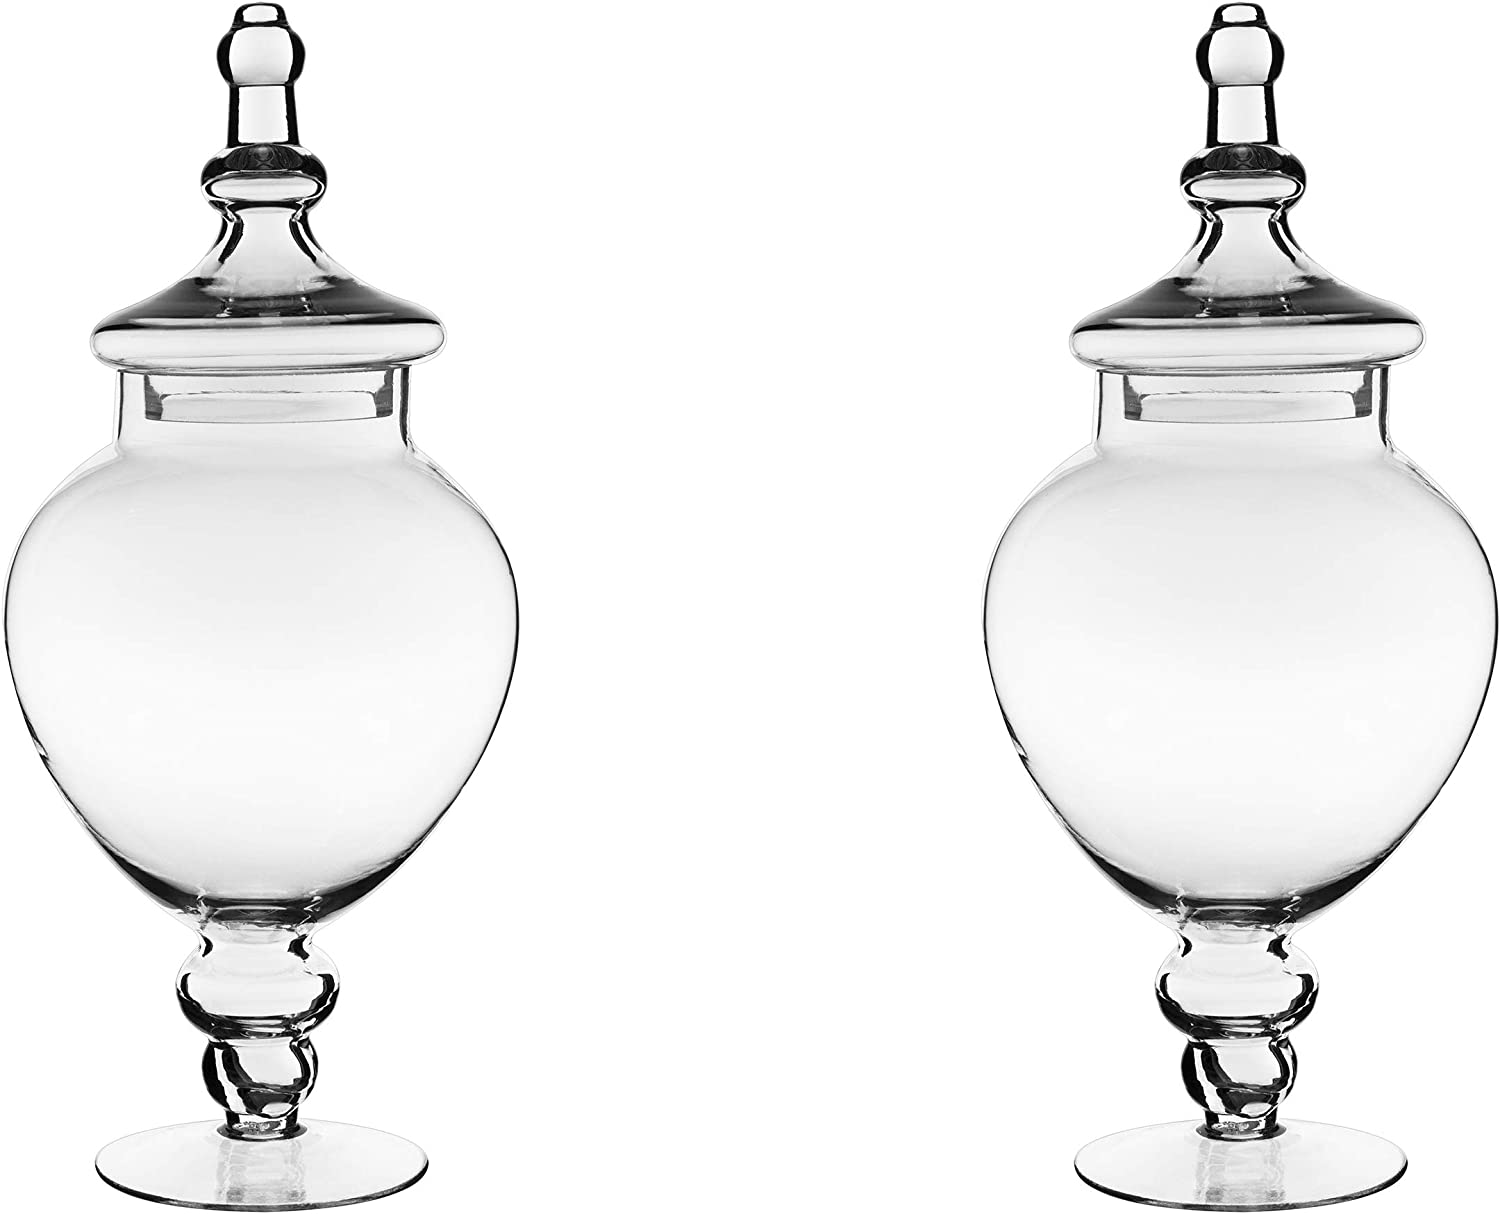 CYS EXCEL Apothecary Jars Pack of 2, Candy Buffet Display, Elegant Storage Jars, Wedding Candy Canisters -Series (1)